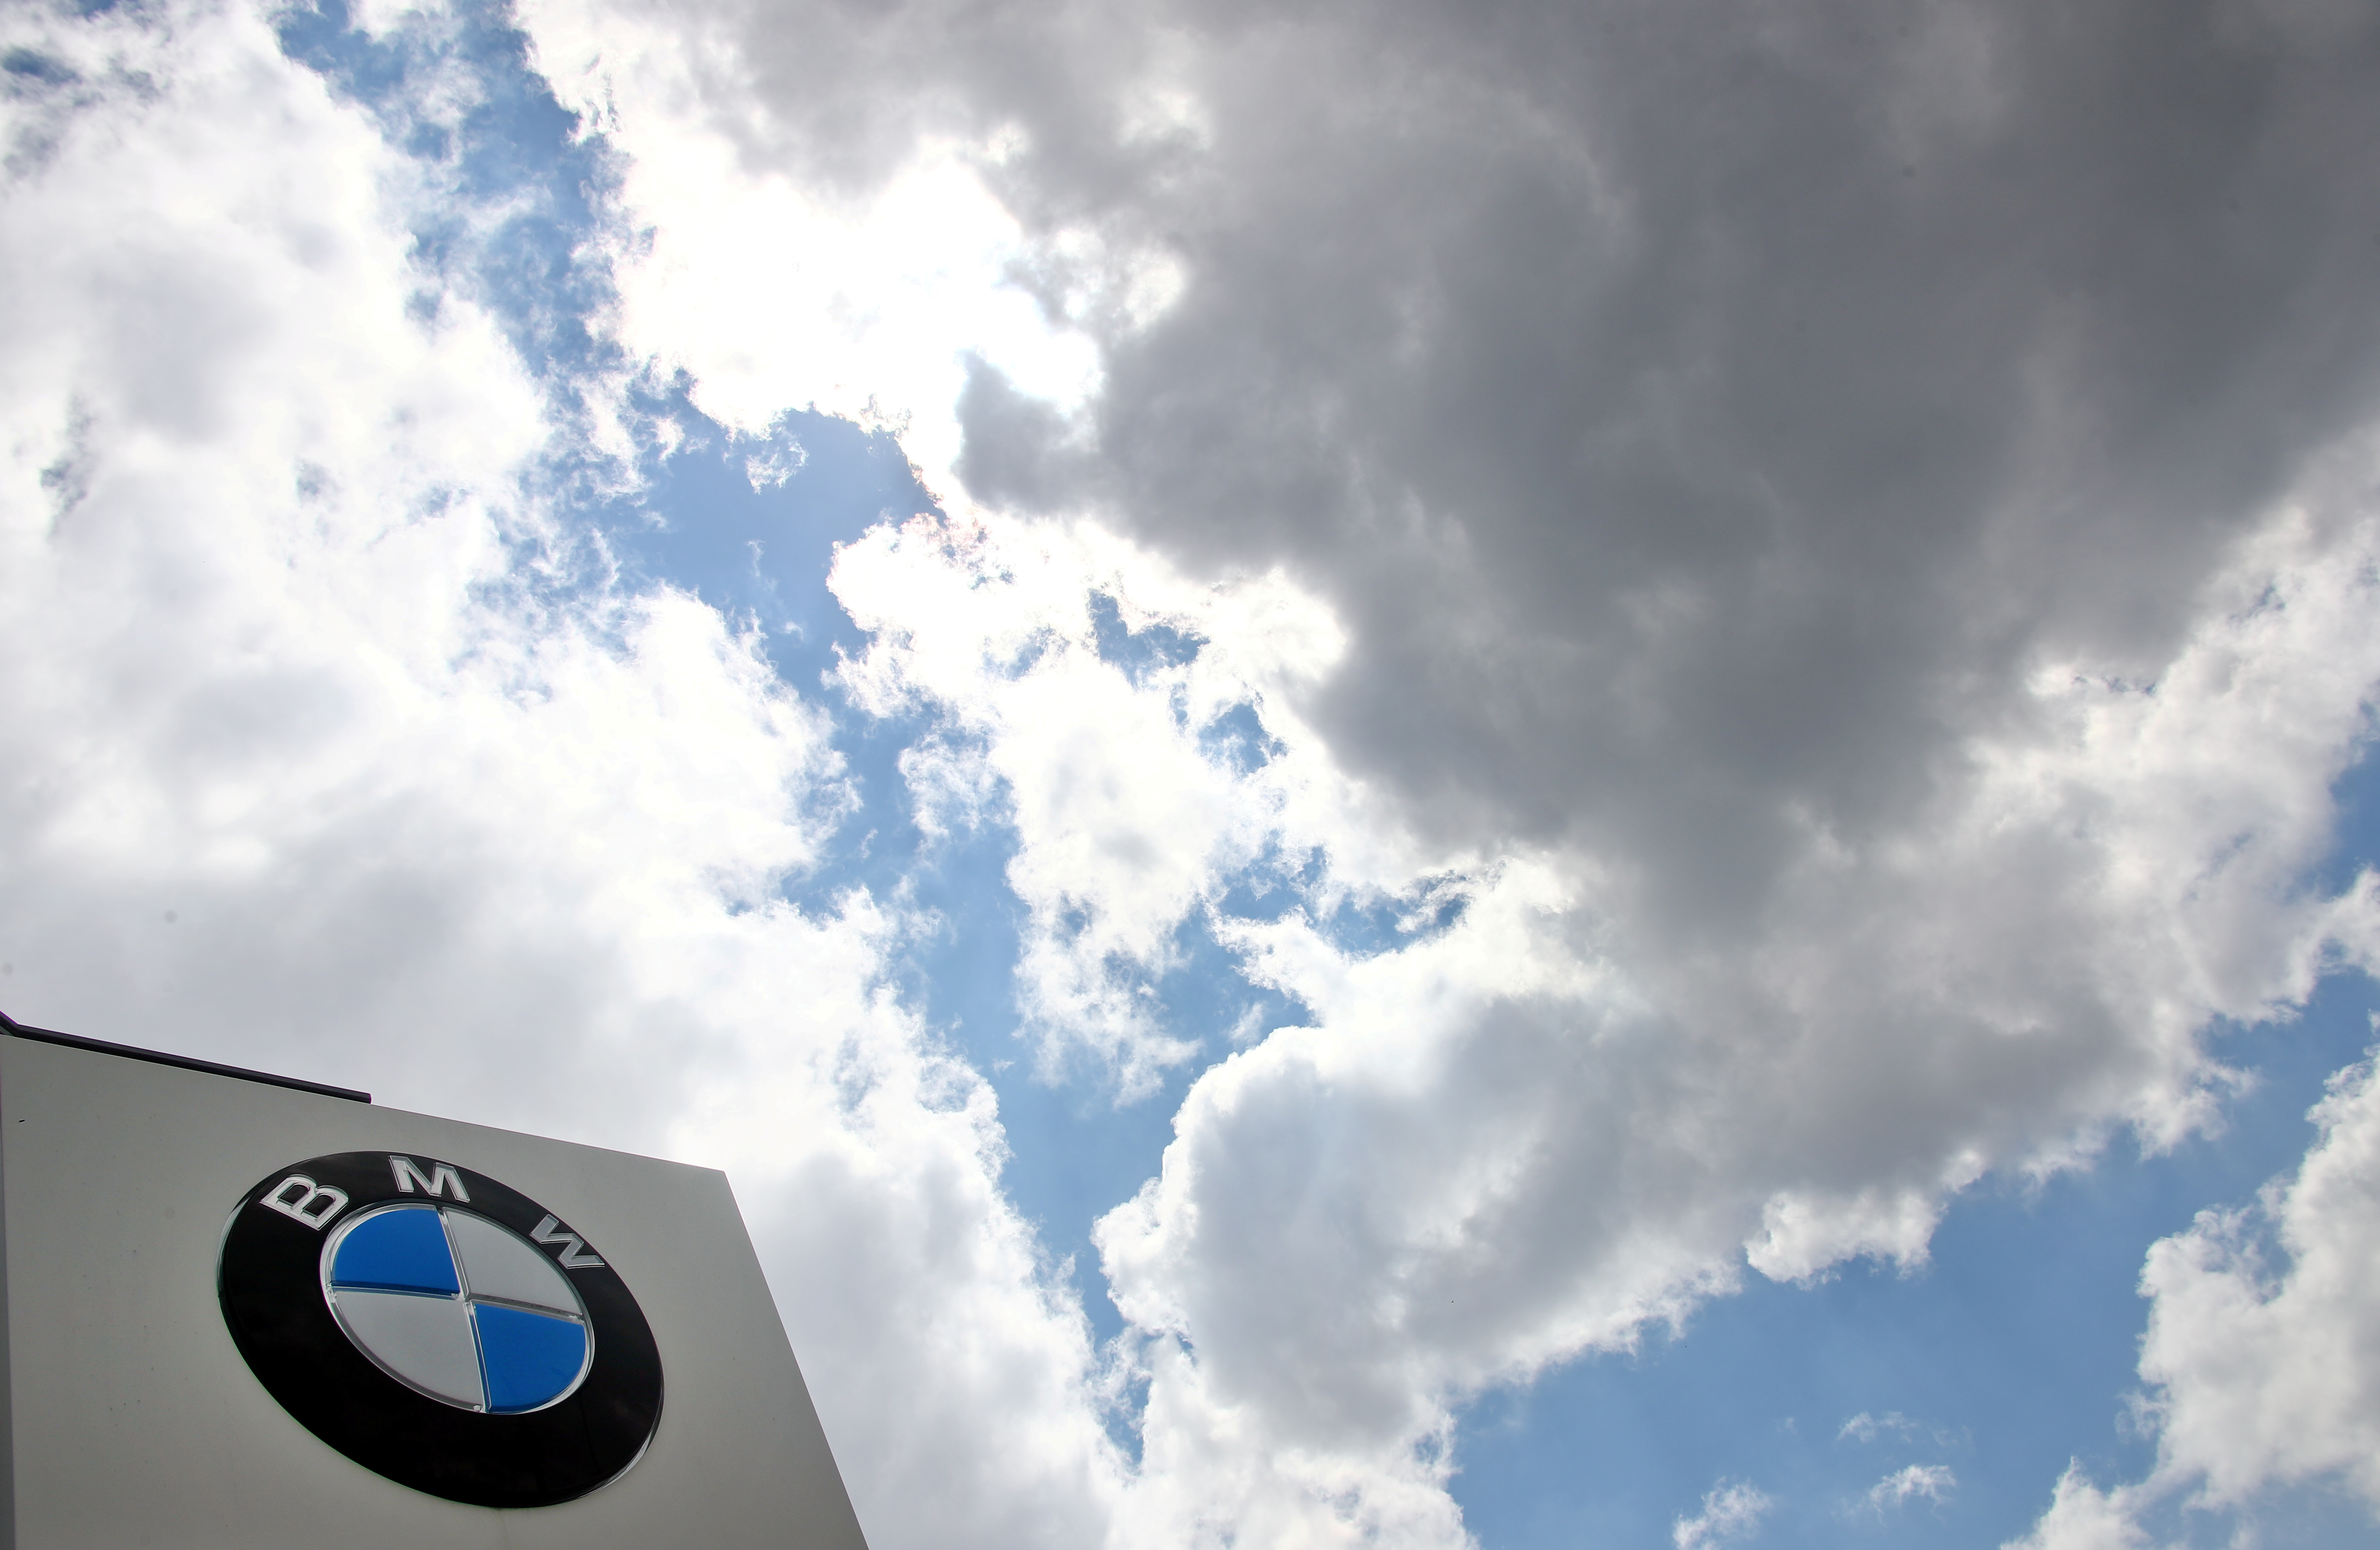 The headquarters of German luxury carmaker BMW is seen in Munich, Germany, August 5, 2020. REUTERS/Michael Dalder/File Photo